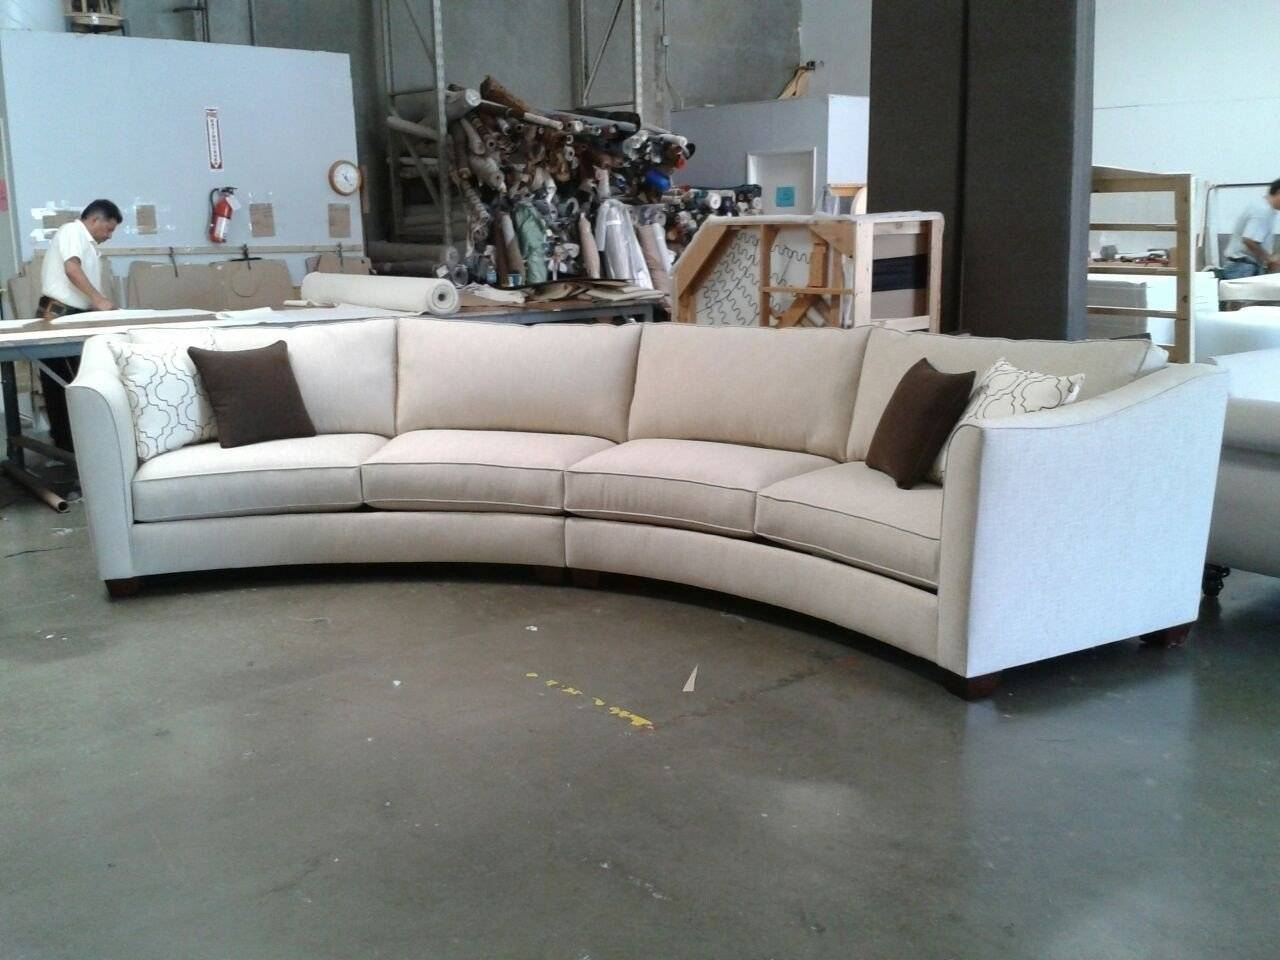 Fascinating Semi Circular Sectional Sofa 54 For 10 Piece Sectional within Semi Sofas (Image 1 of 15)